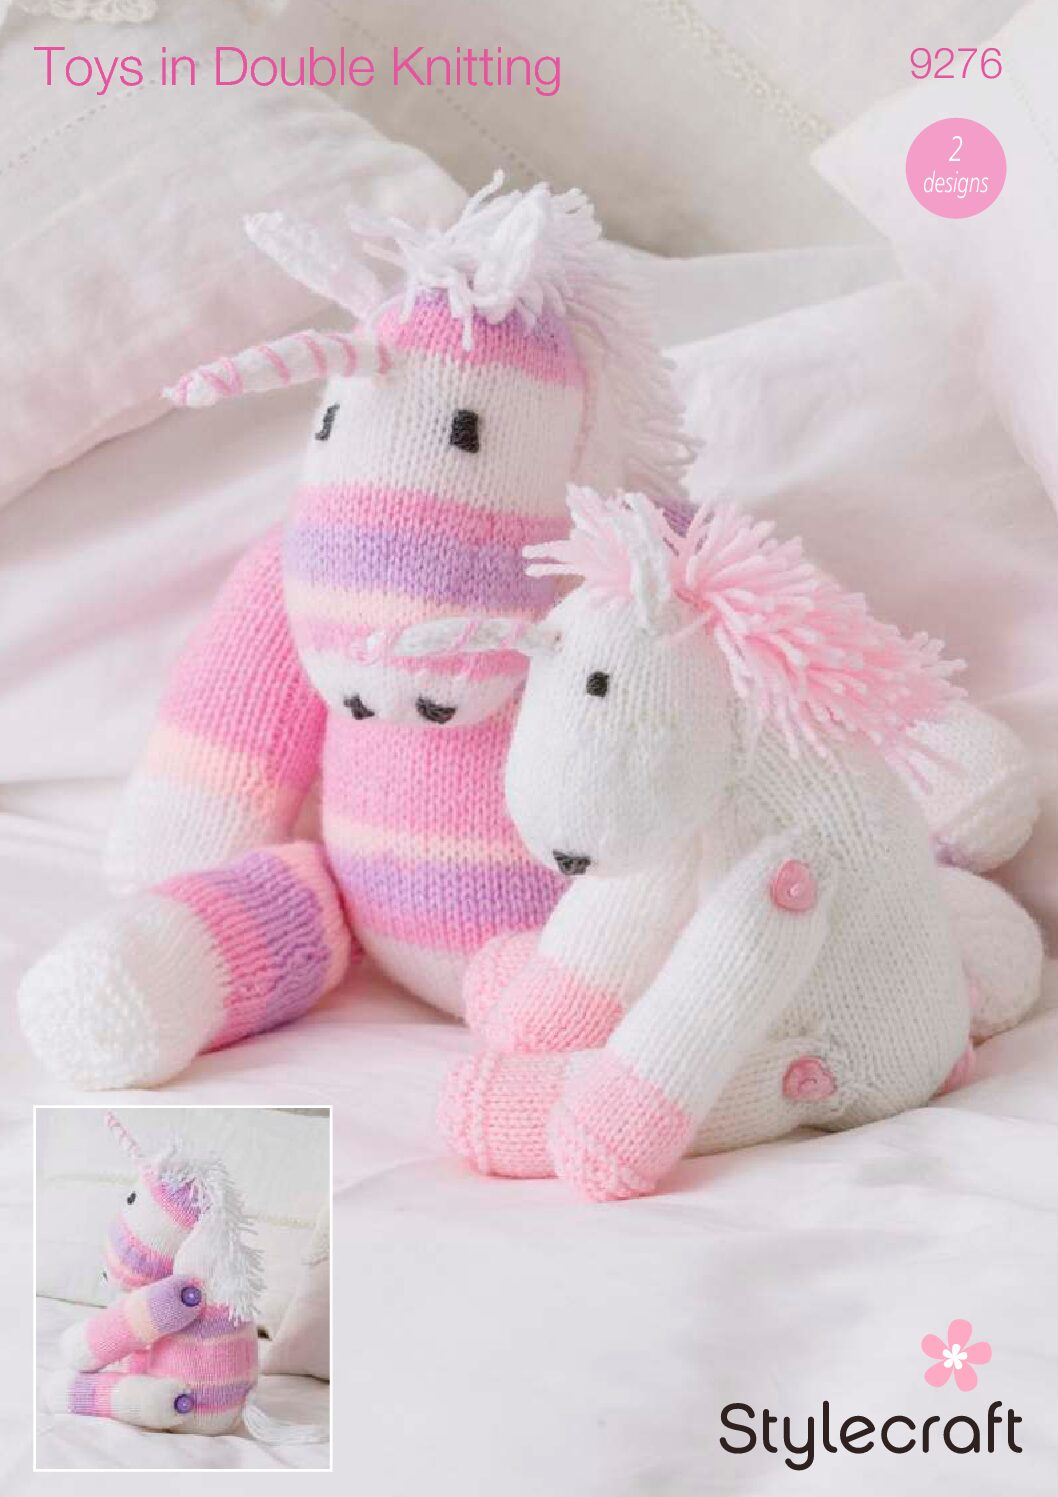 Stylecraft Pattern Toys 9276 (download) product image